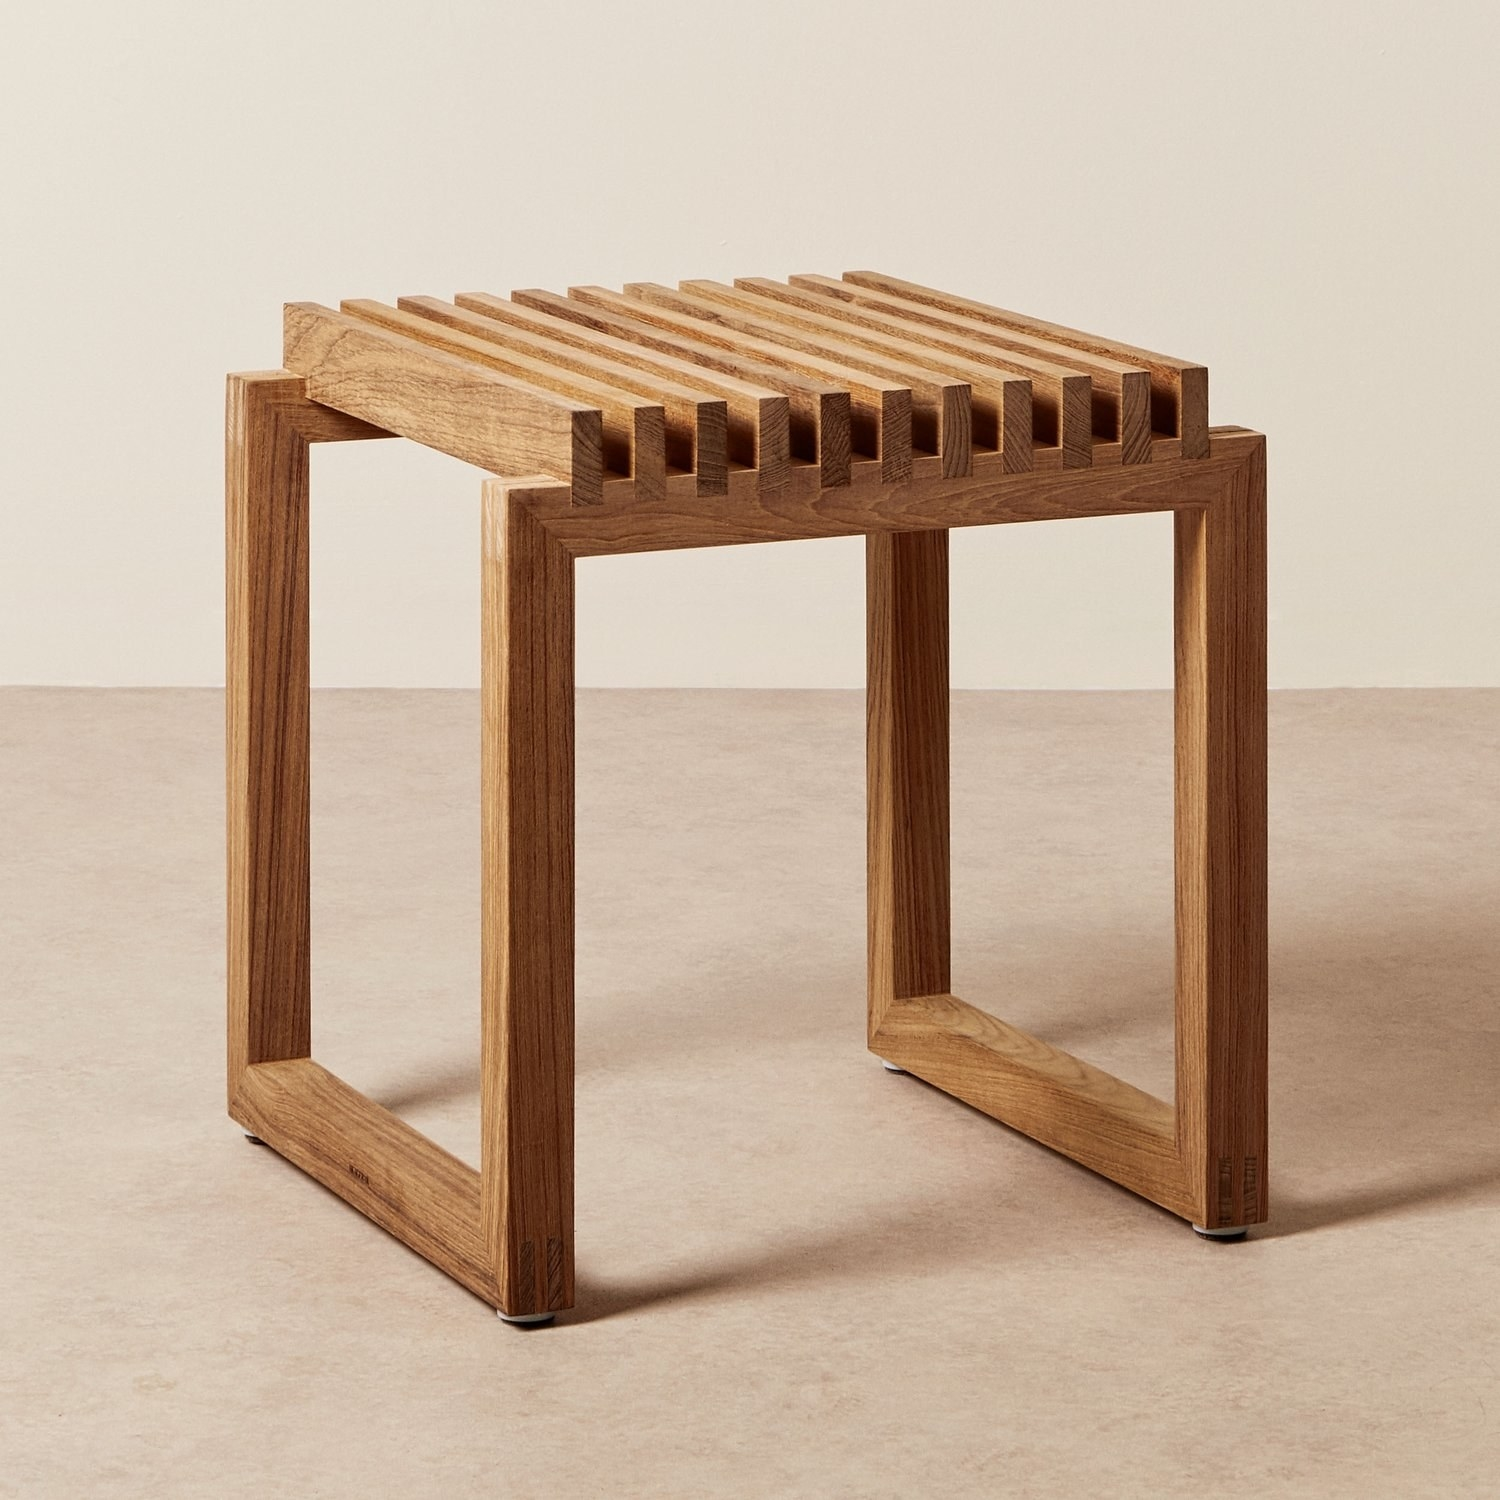 The wooden stool